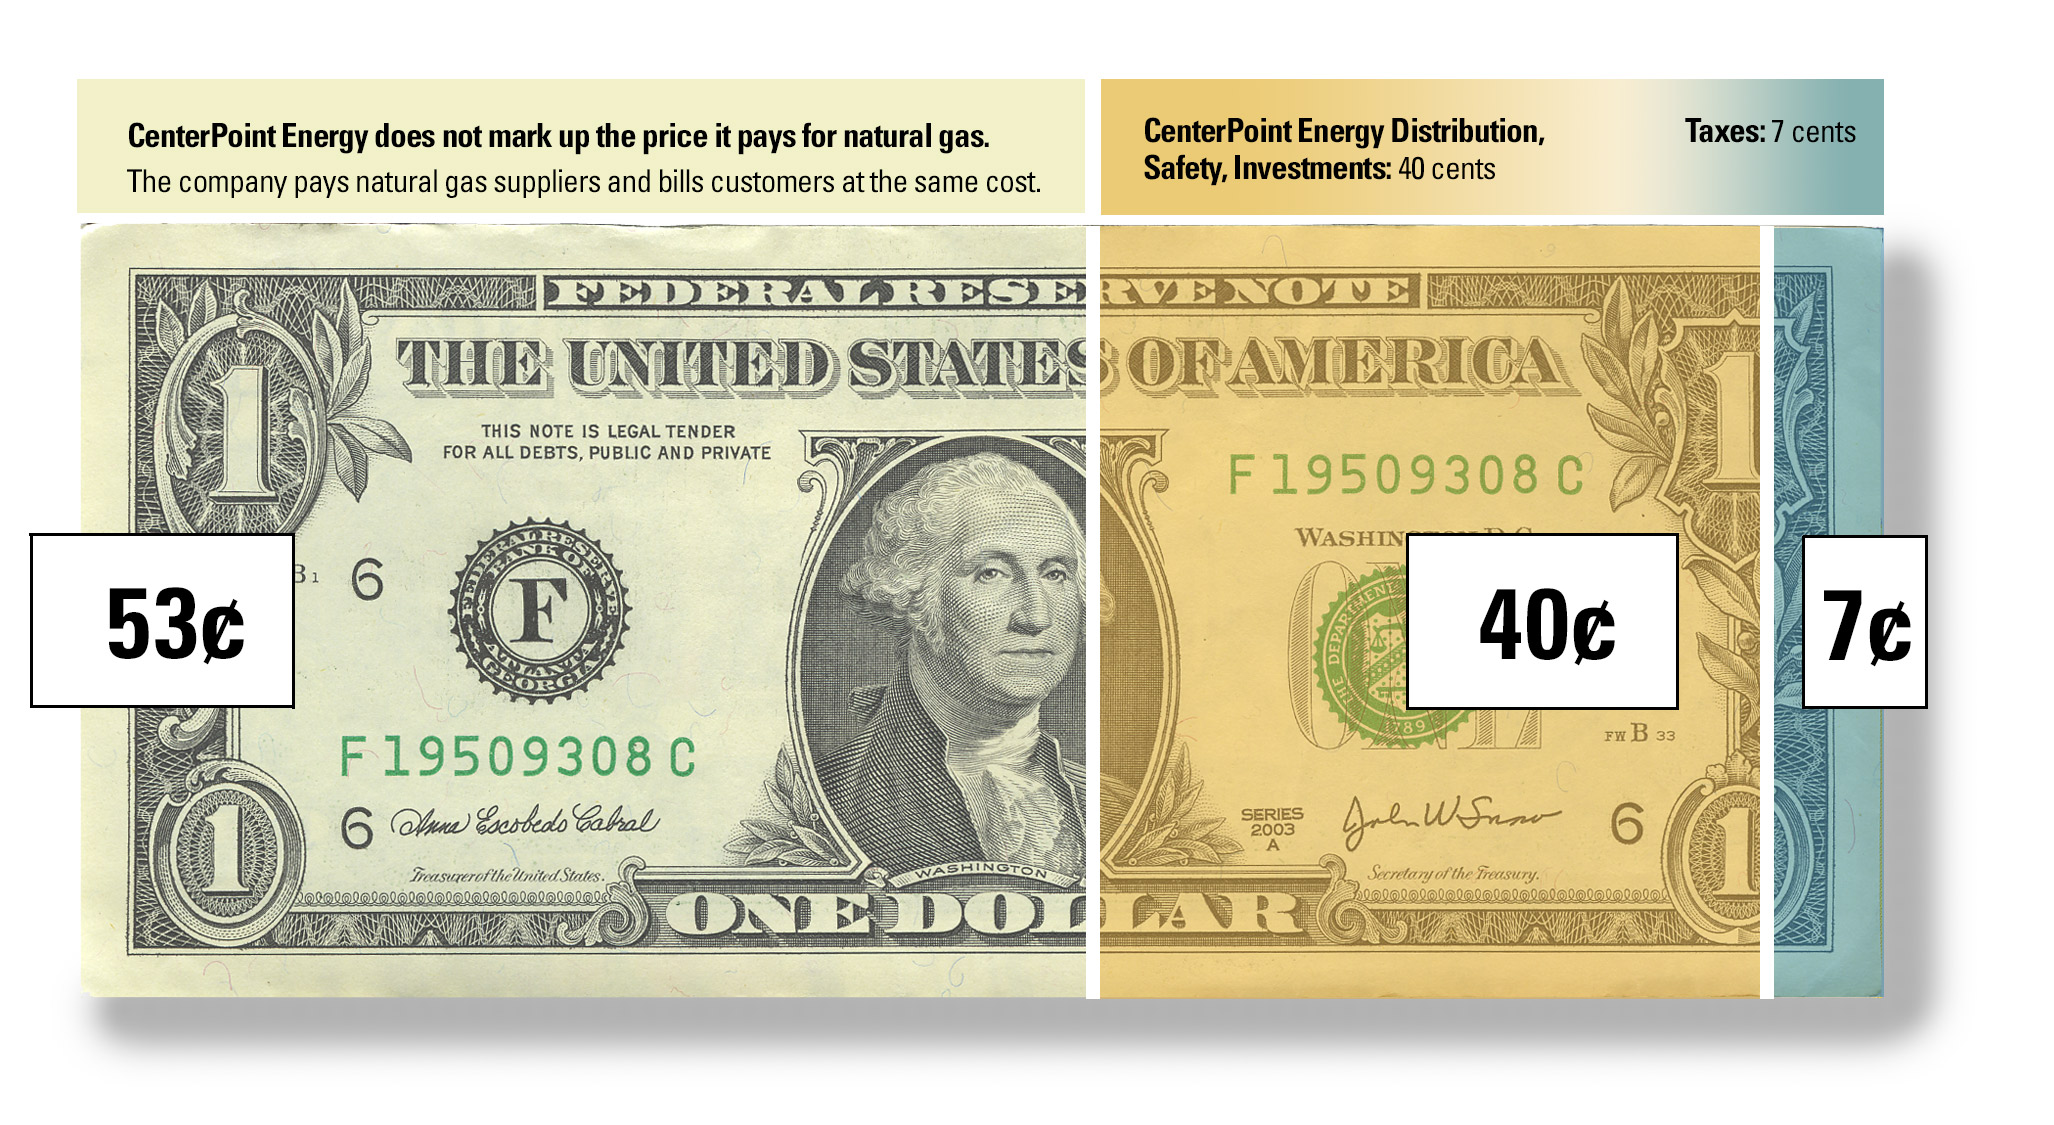 Every dollar on your natural gas bill can be divided into three parts